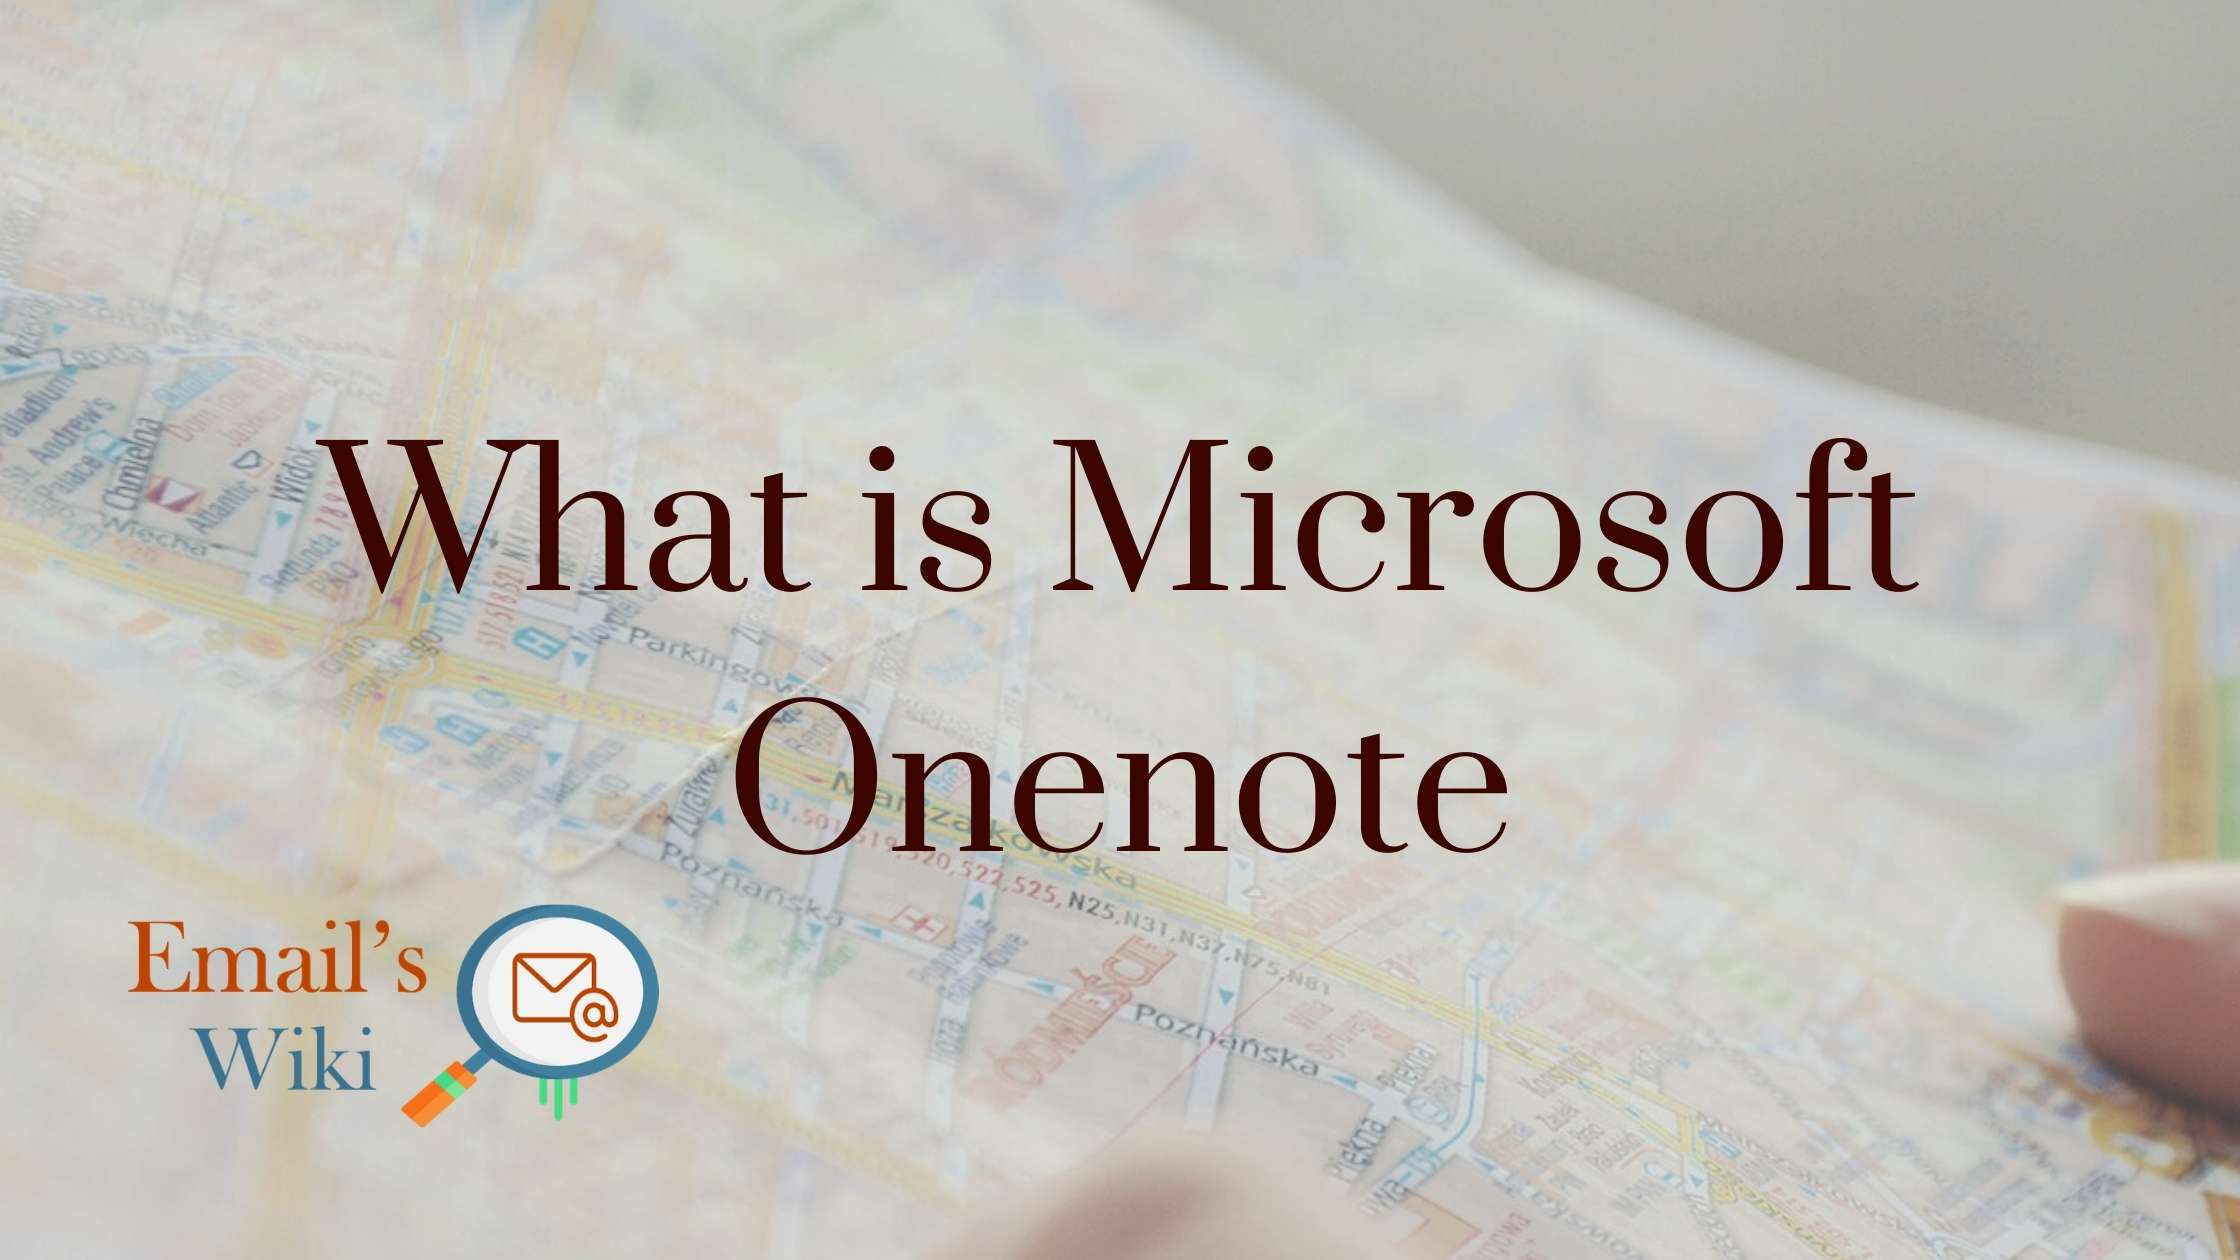 What is Microsoft Onenote